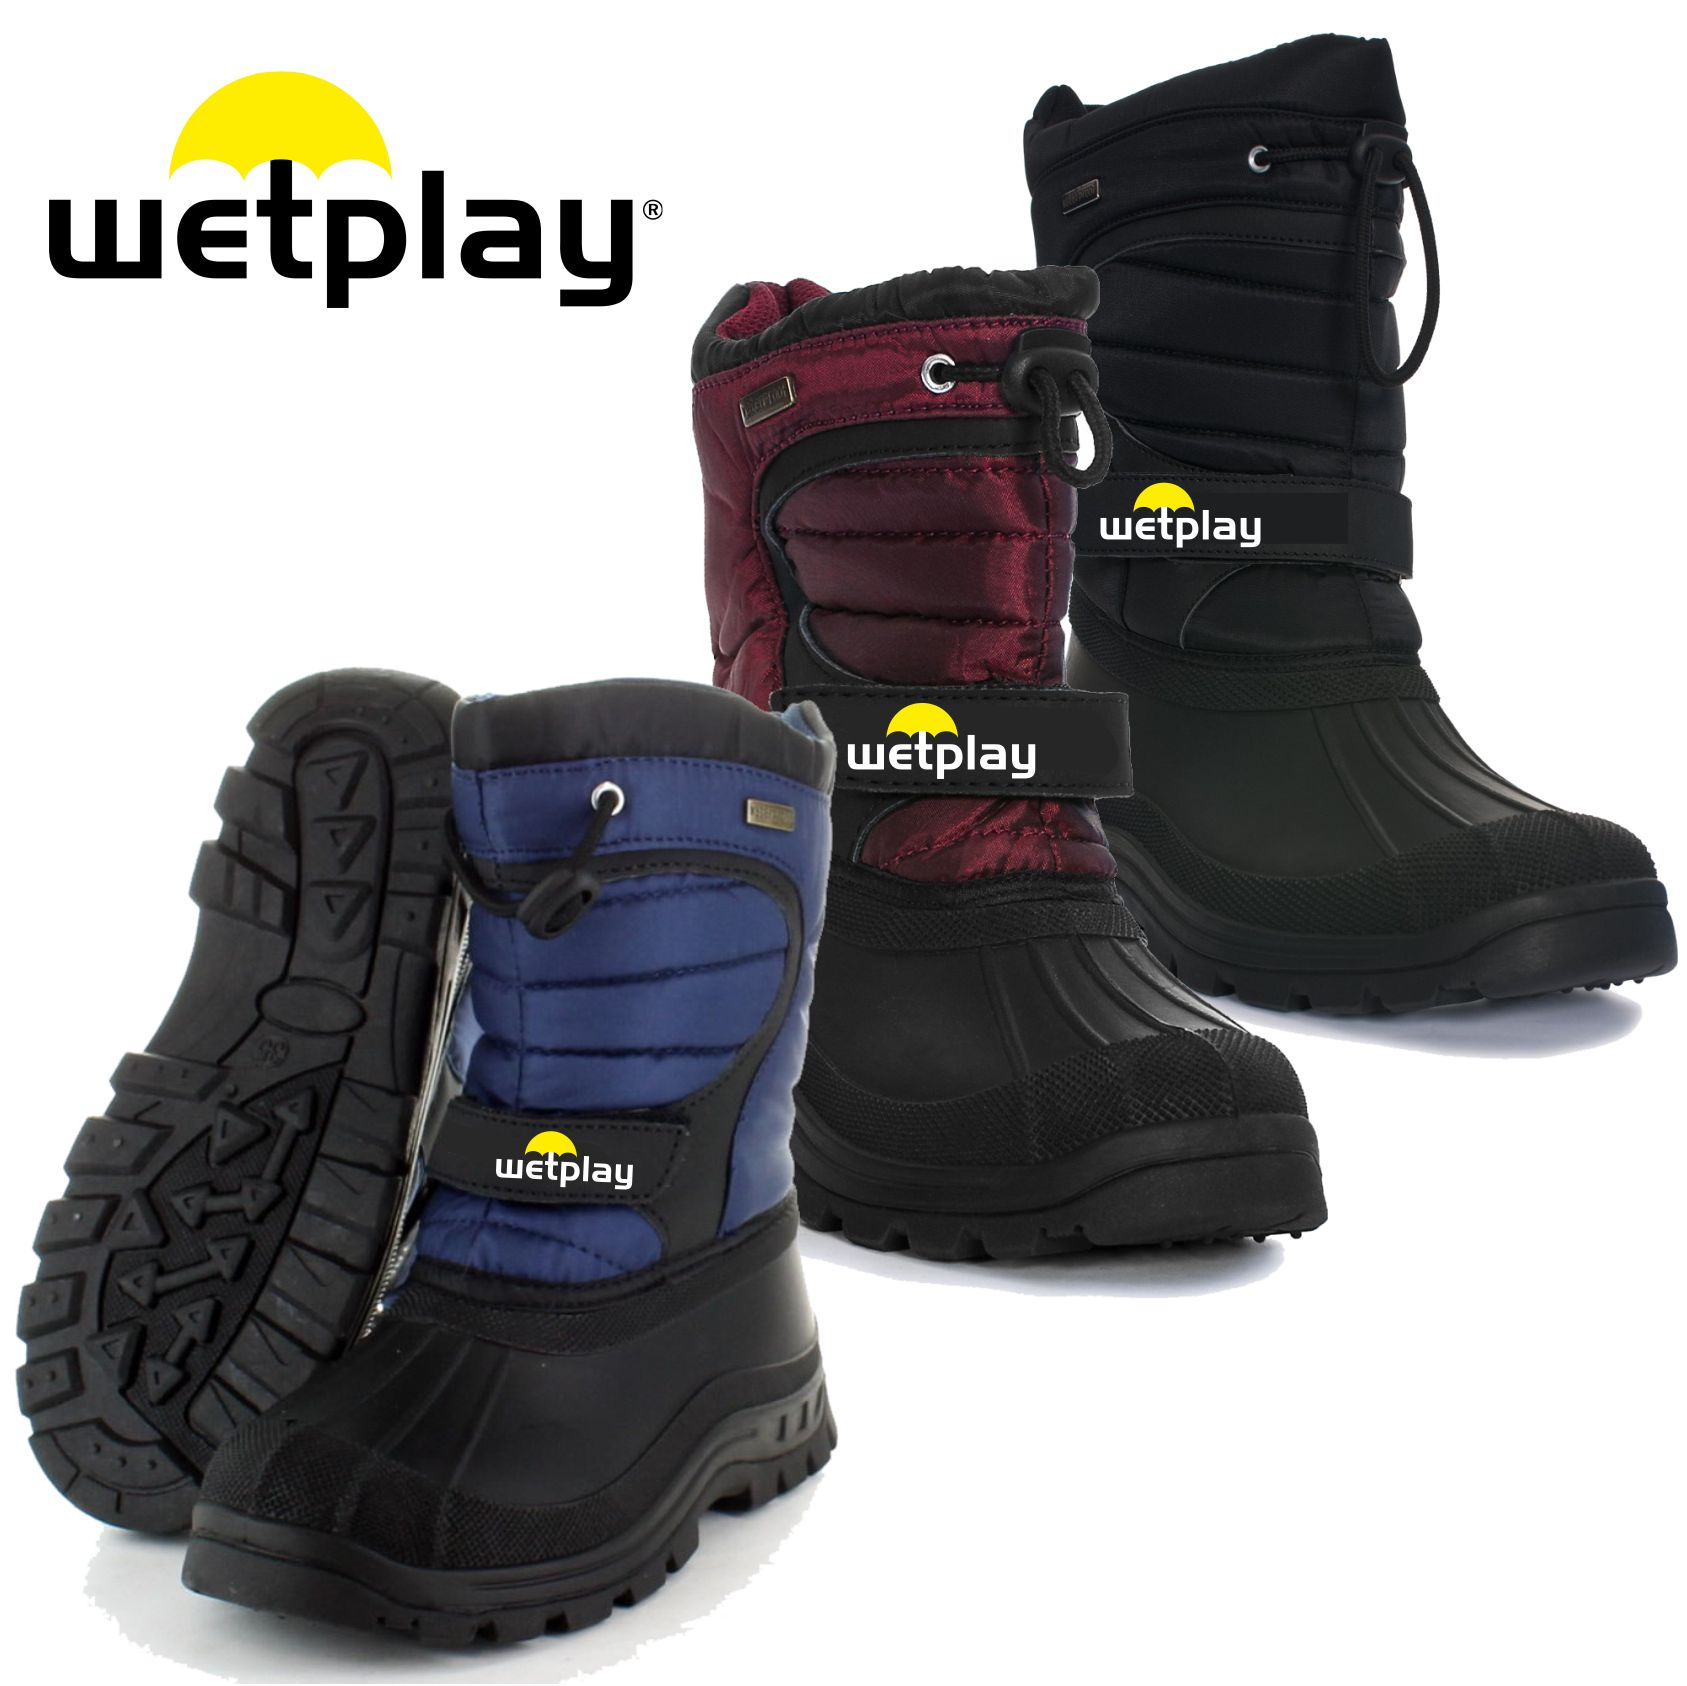 Wetplay Snow Boots - £19.95